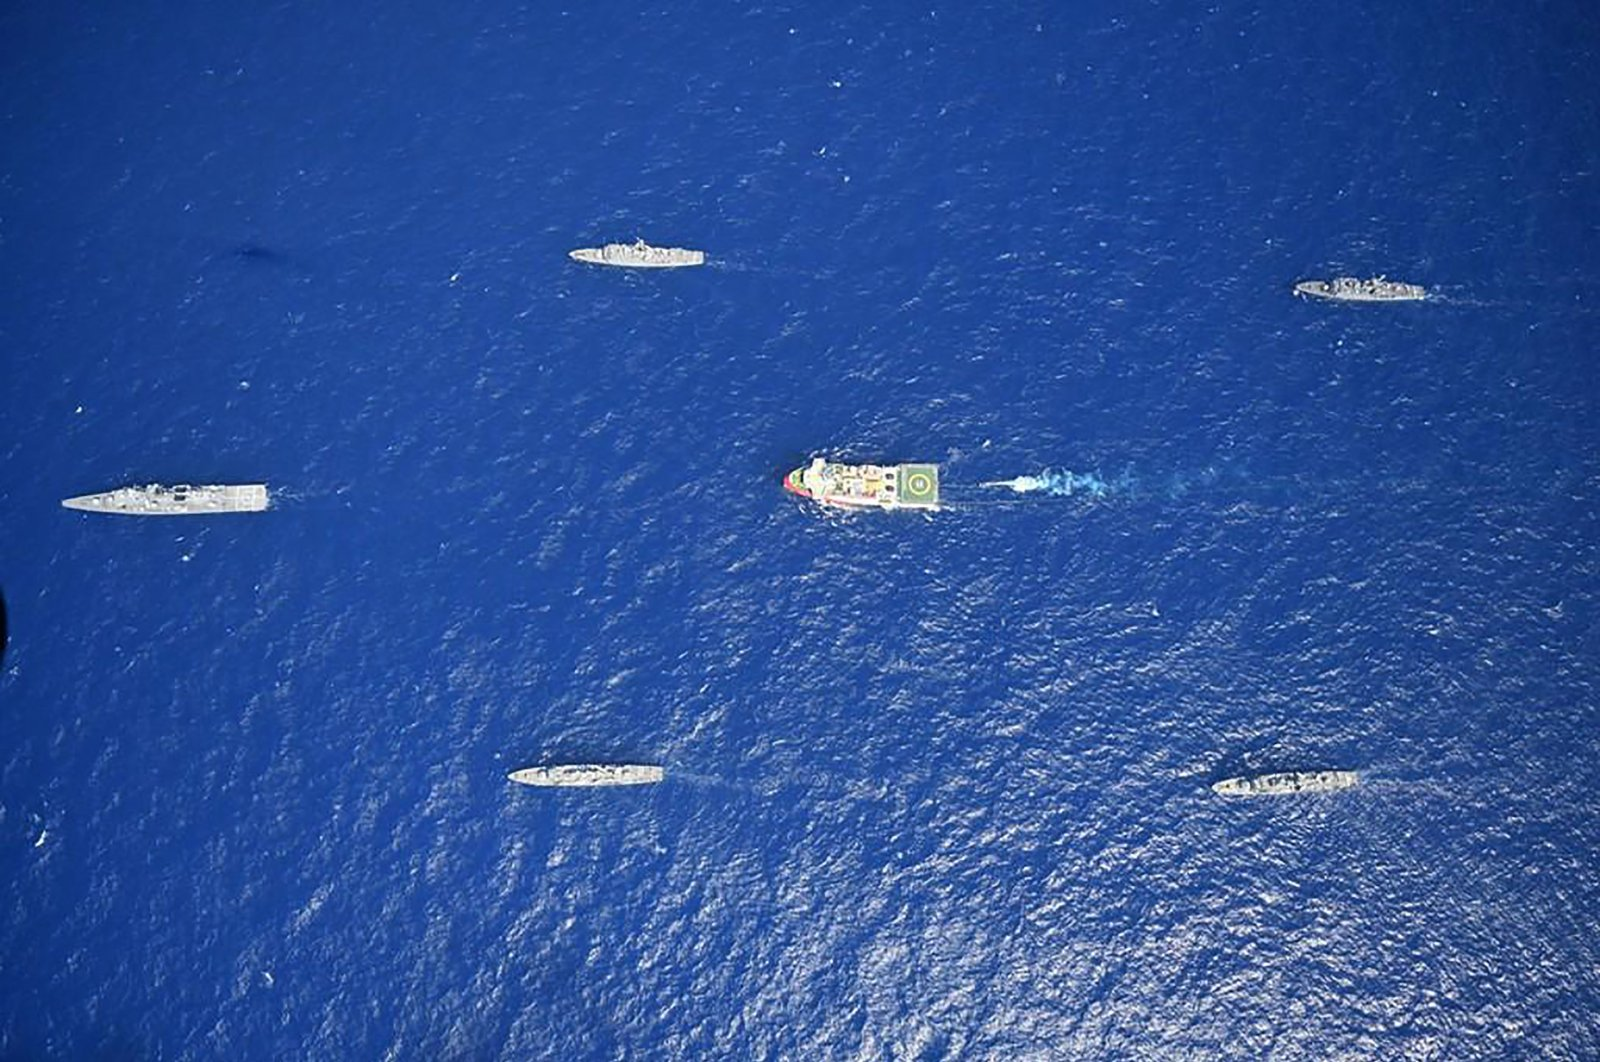 This handout photograph released by the Turkish Defence Ministry on Aug. 12, 2020, shows Turkish seismic research vessel 'Oruç Reis' (C) as it is escorted by Turkish Naval ships in the Mediterranean Sea, off Antalya on Aug. 10, 2020. (Defense Ministry Handout)